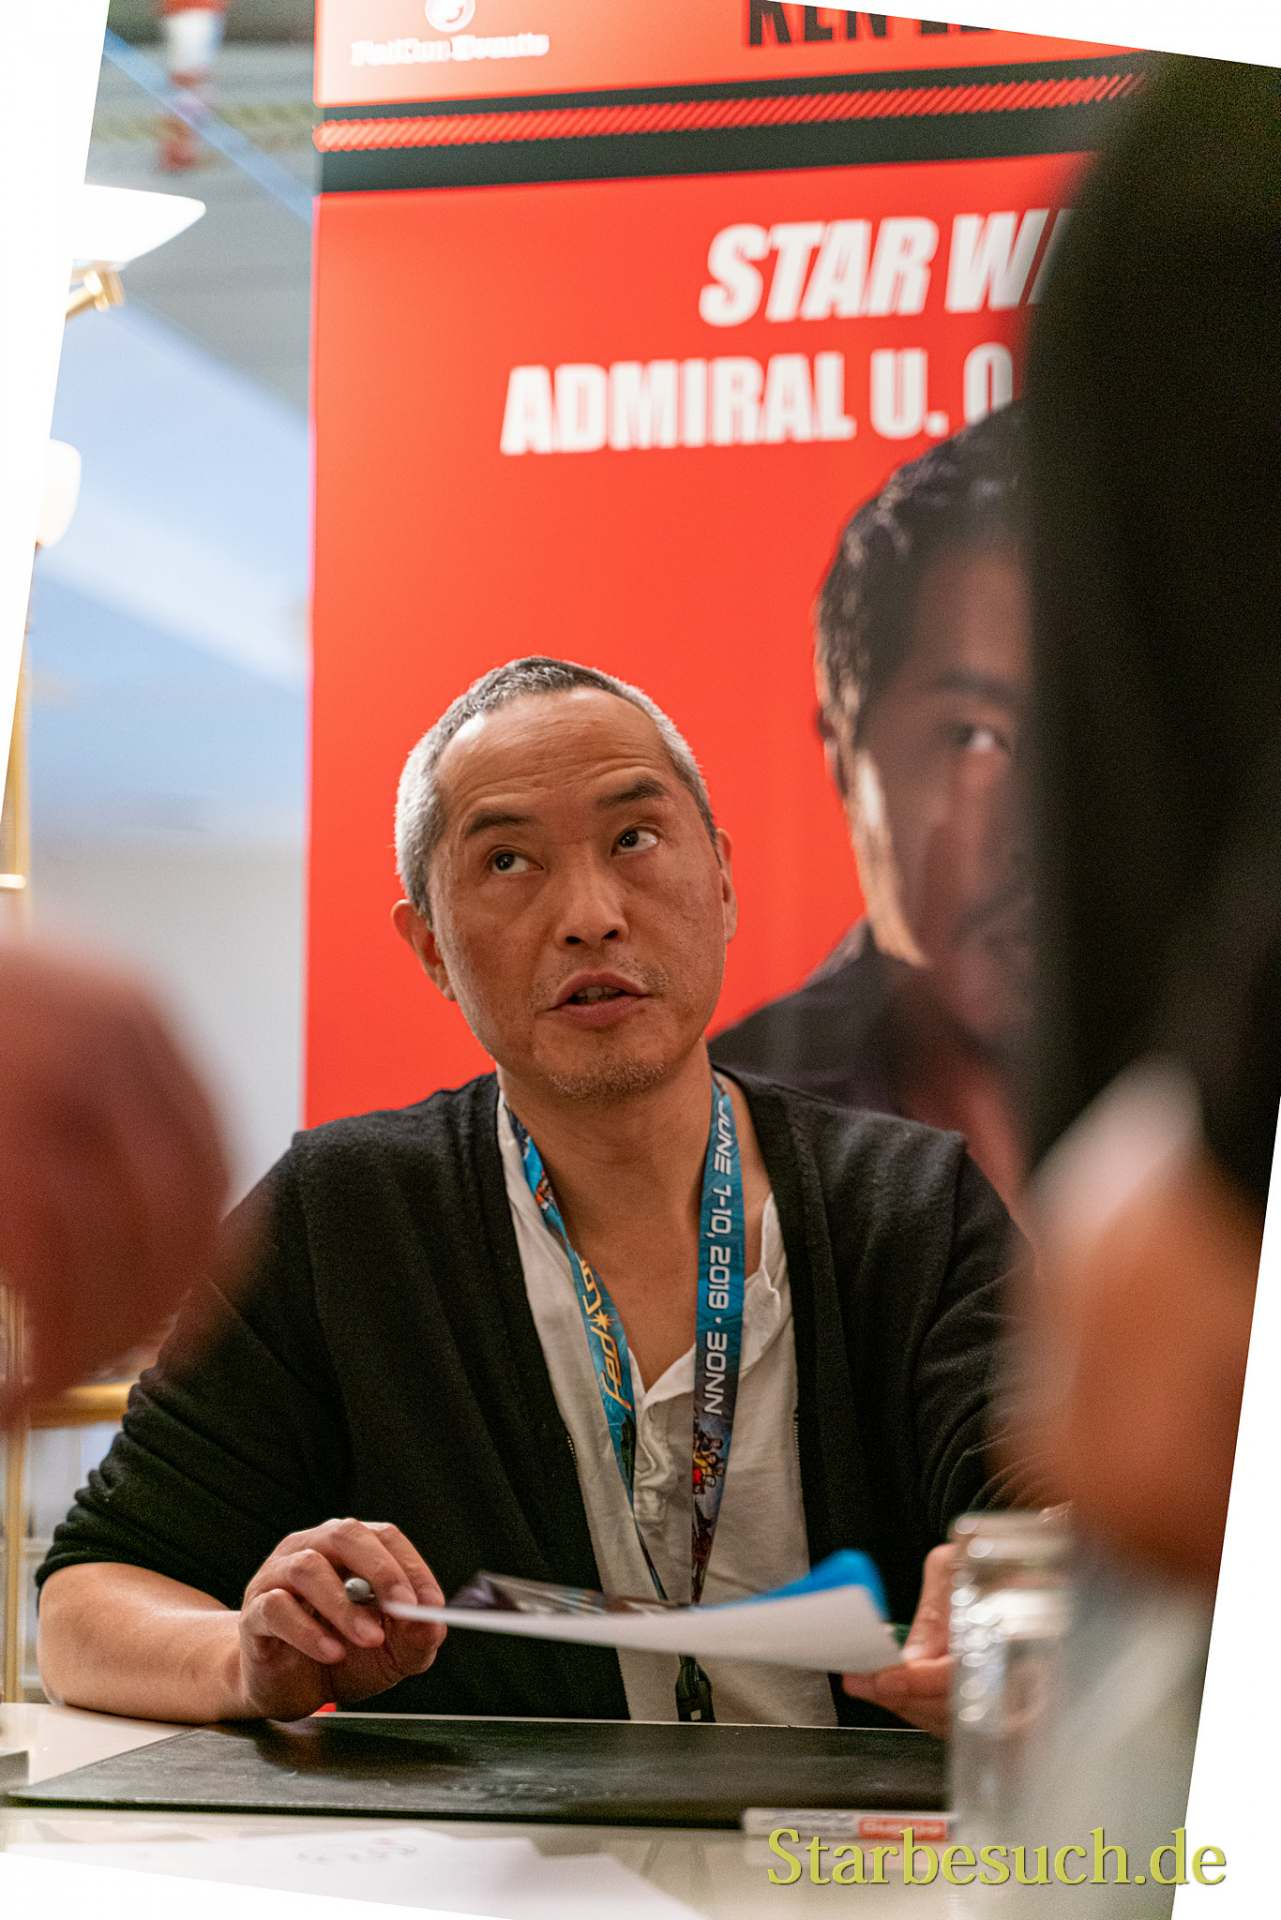 Bonn, Germany - June 8 2019: Ken Leung (*1970, American actor - Star Wars, LOST) signing autographs for fans at FedCon 28, a four day sci-fi convention. FedCon 28 took place Jun 7-10 2019.